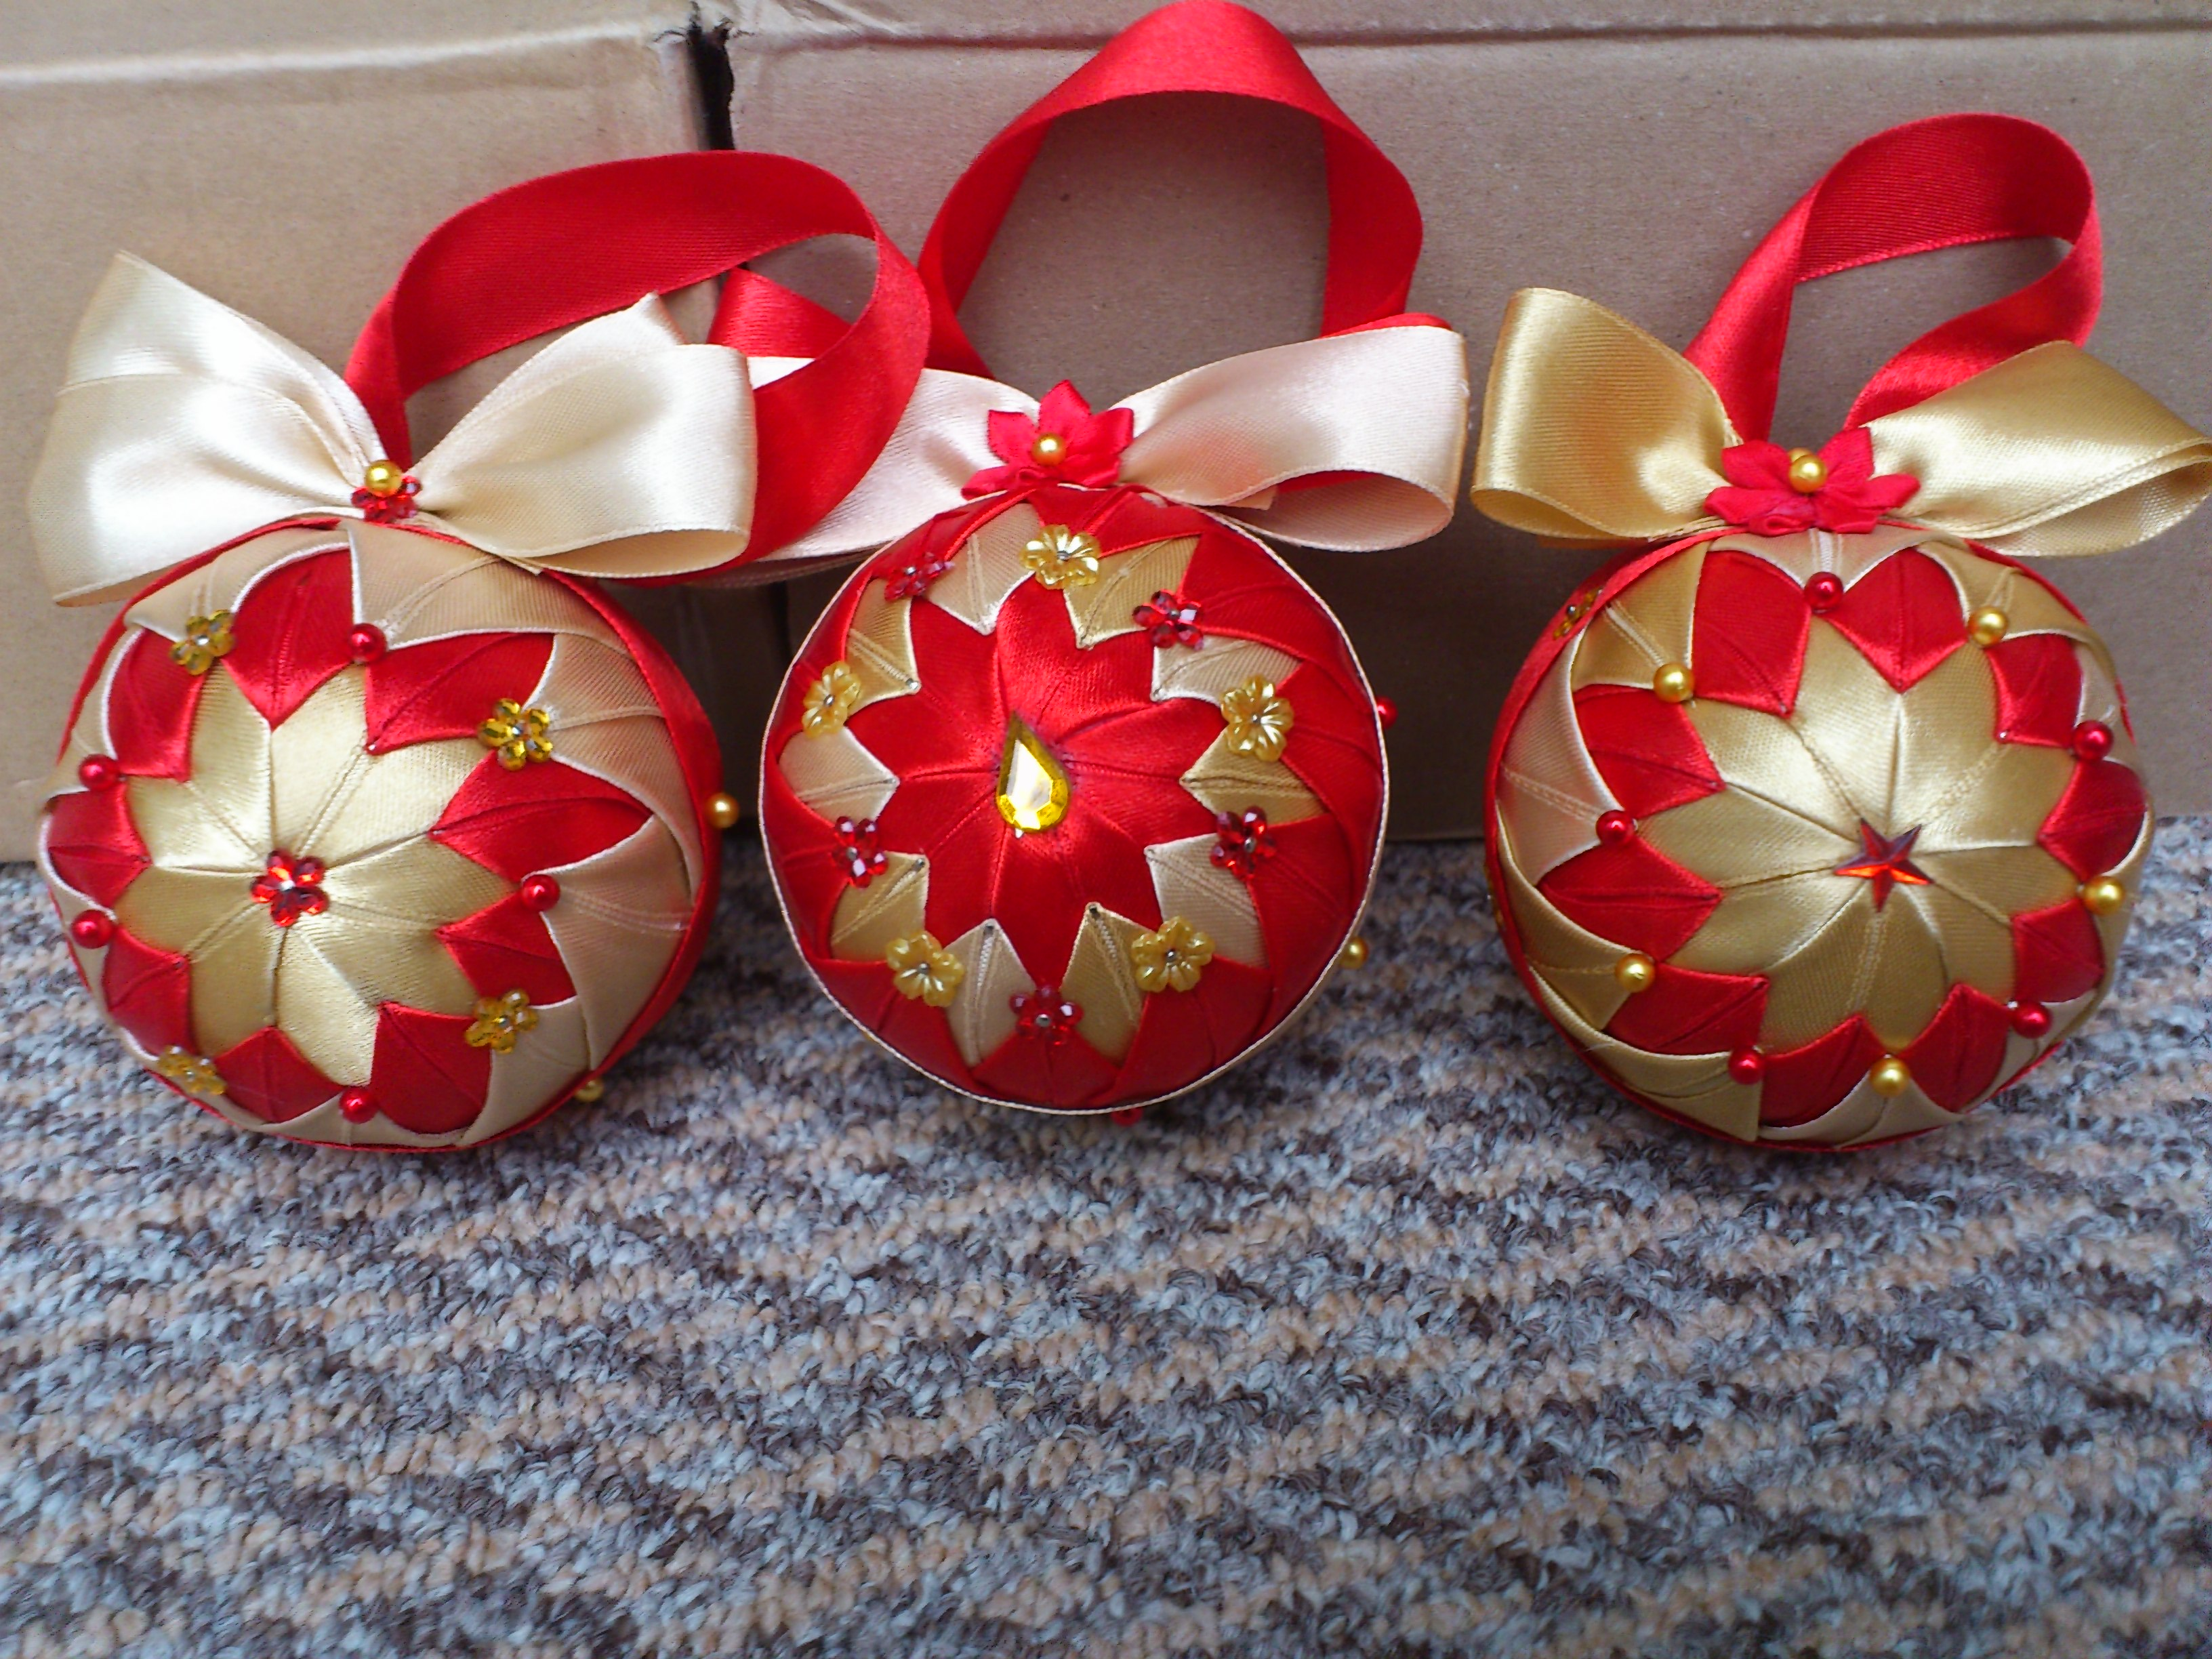 Hcd003 Christmas Baubles Red Handmade Christmas